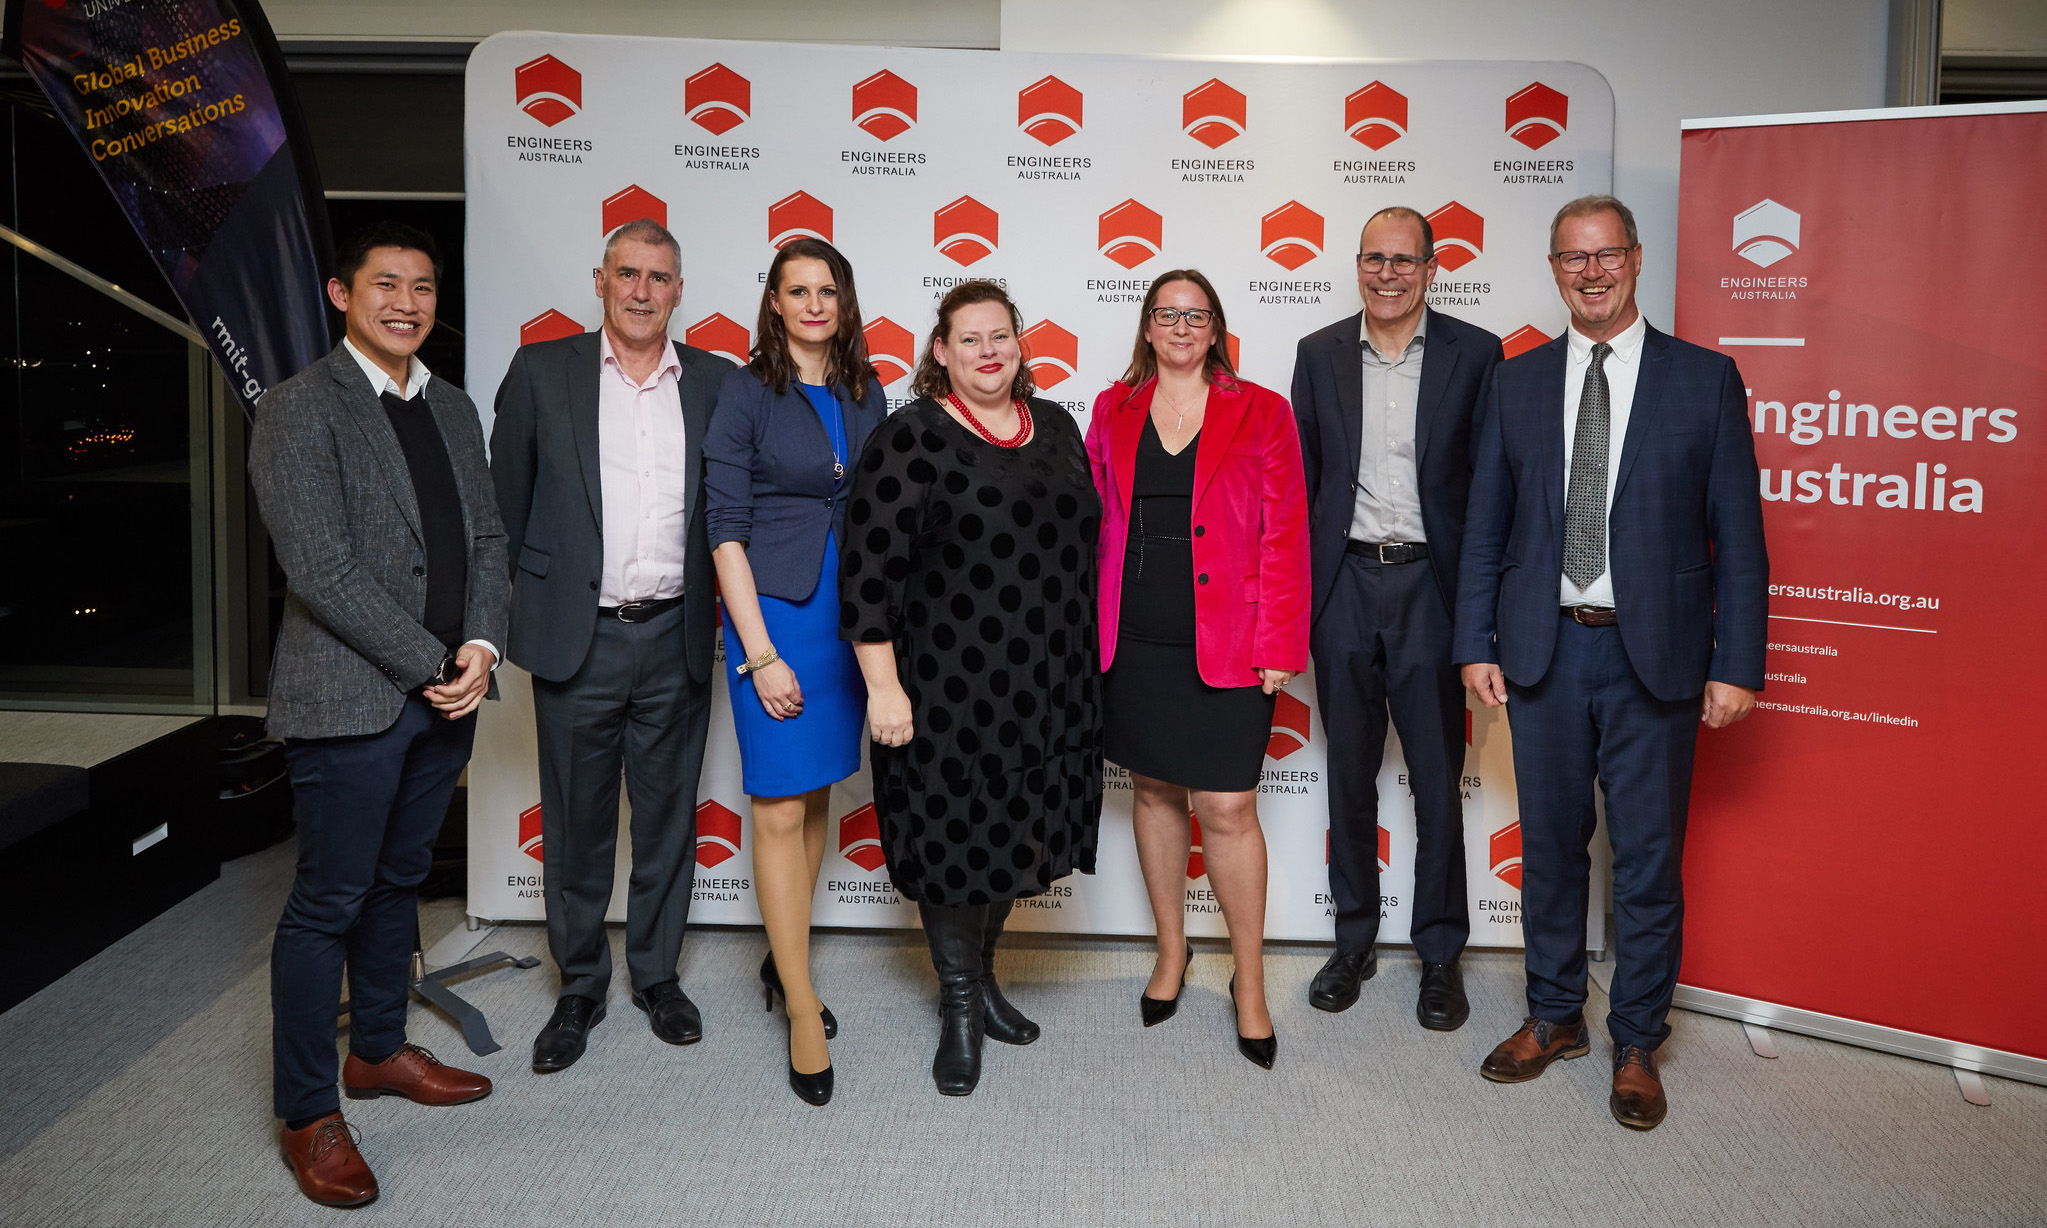 L-R: Bernard Lee, Peter Carney, Justyna Dabrowska, Kelly Hutchinson, Anne Laure-Mention, Director Global Business Innovation, RMIT, Matthew Young and Hannes Erler.